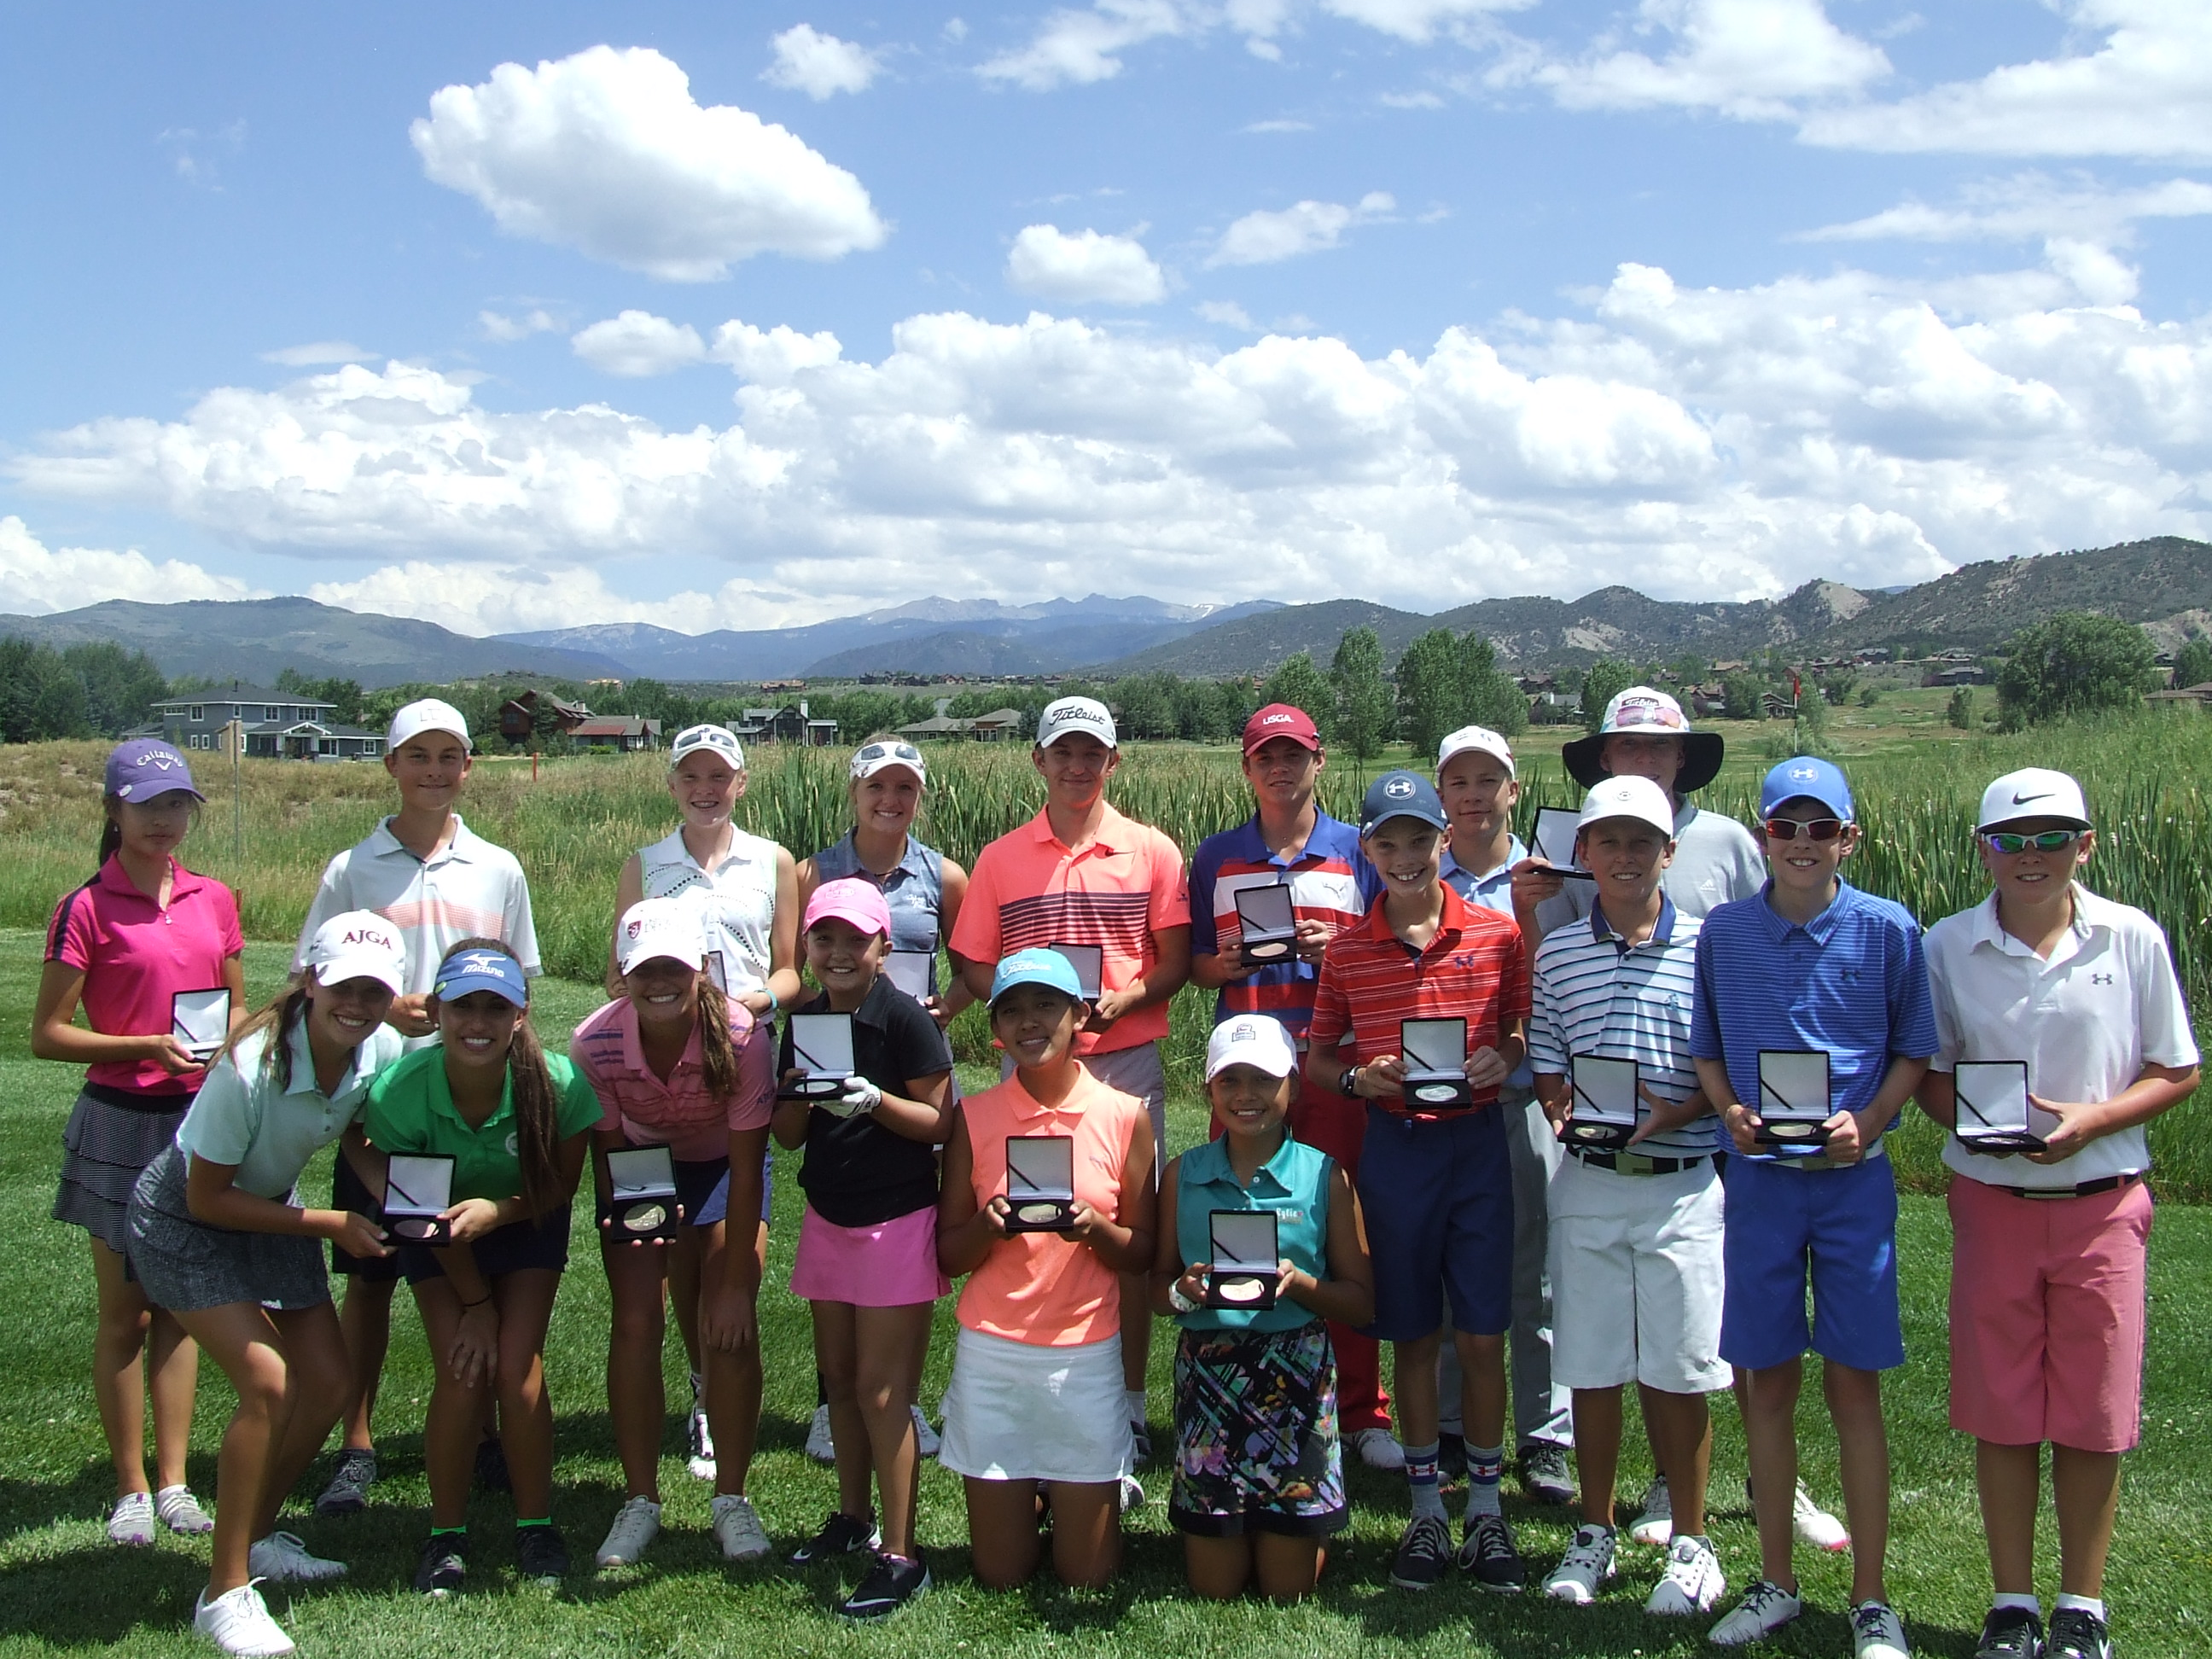 Champions Crowned at Mountain Two-Day